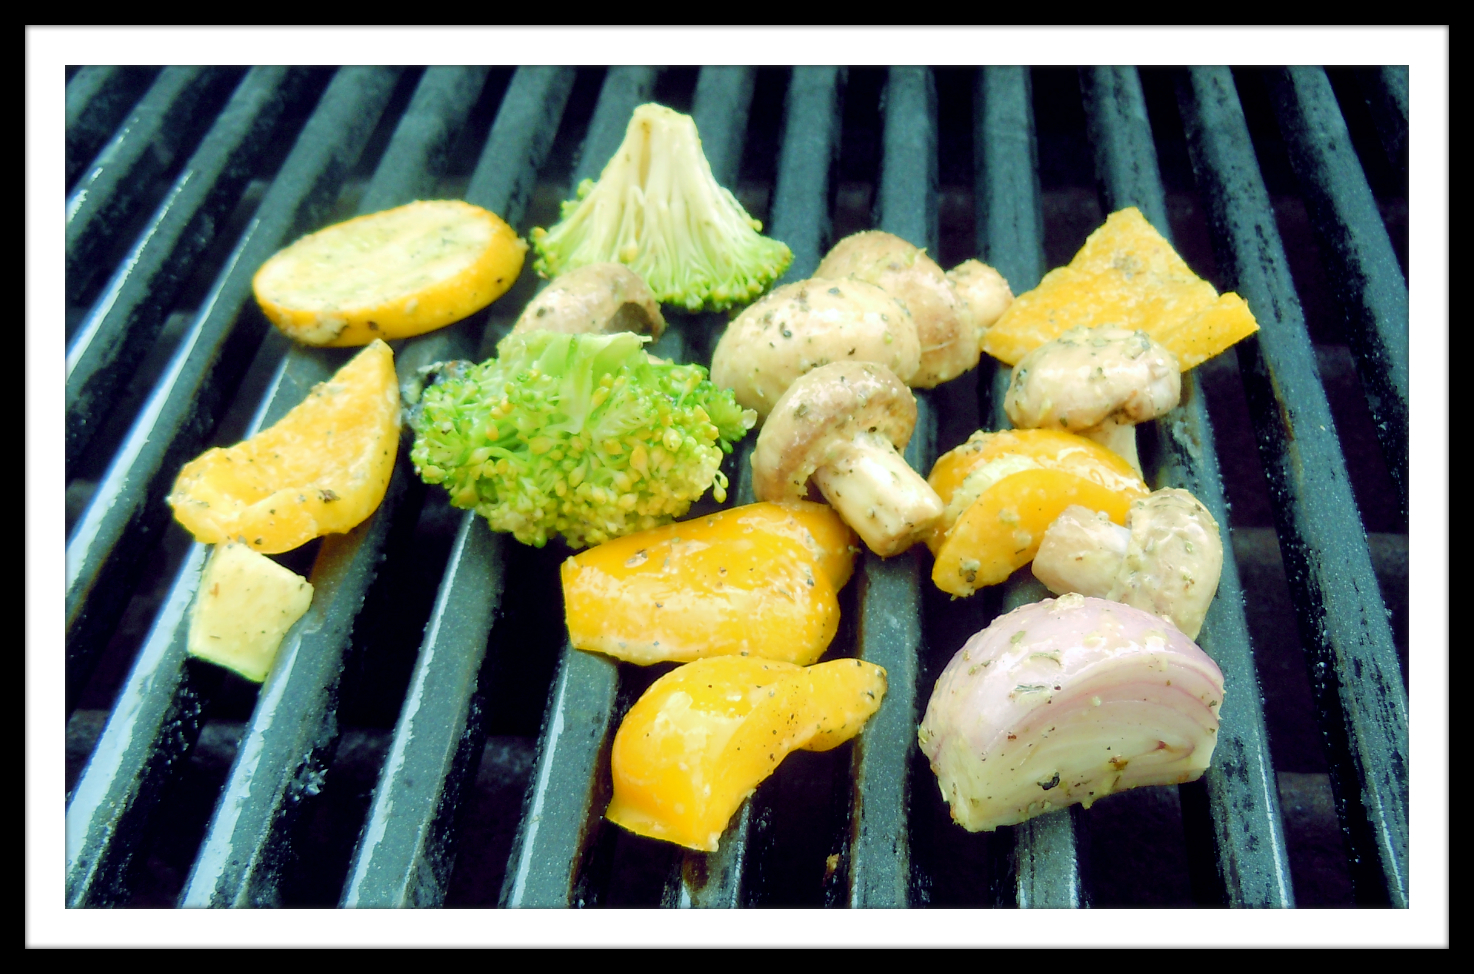 Veggies Grilling on the Weber Grill